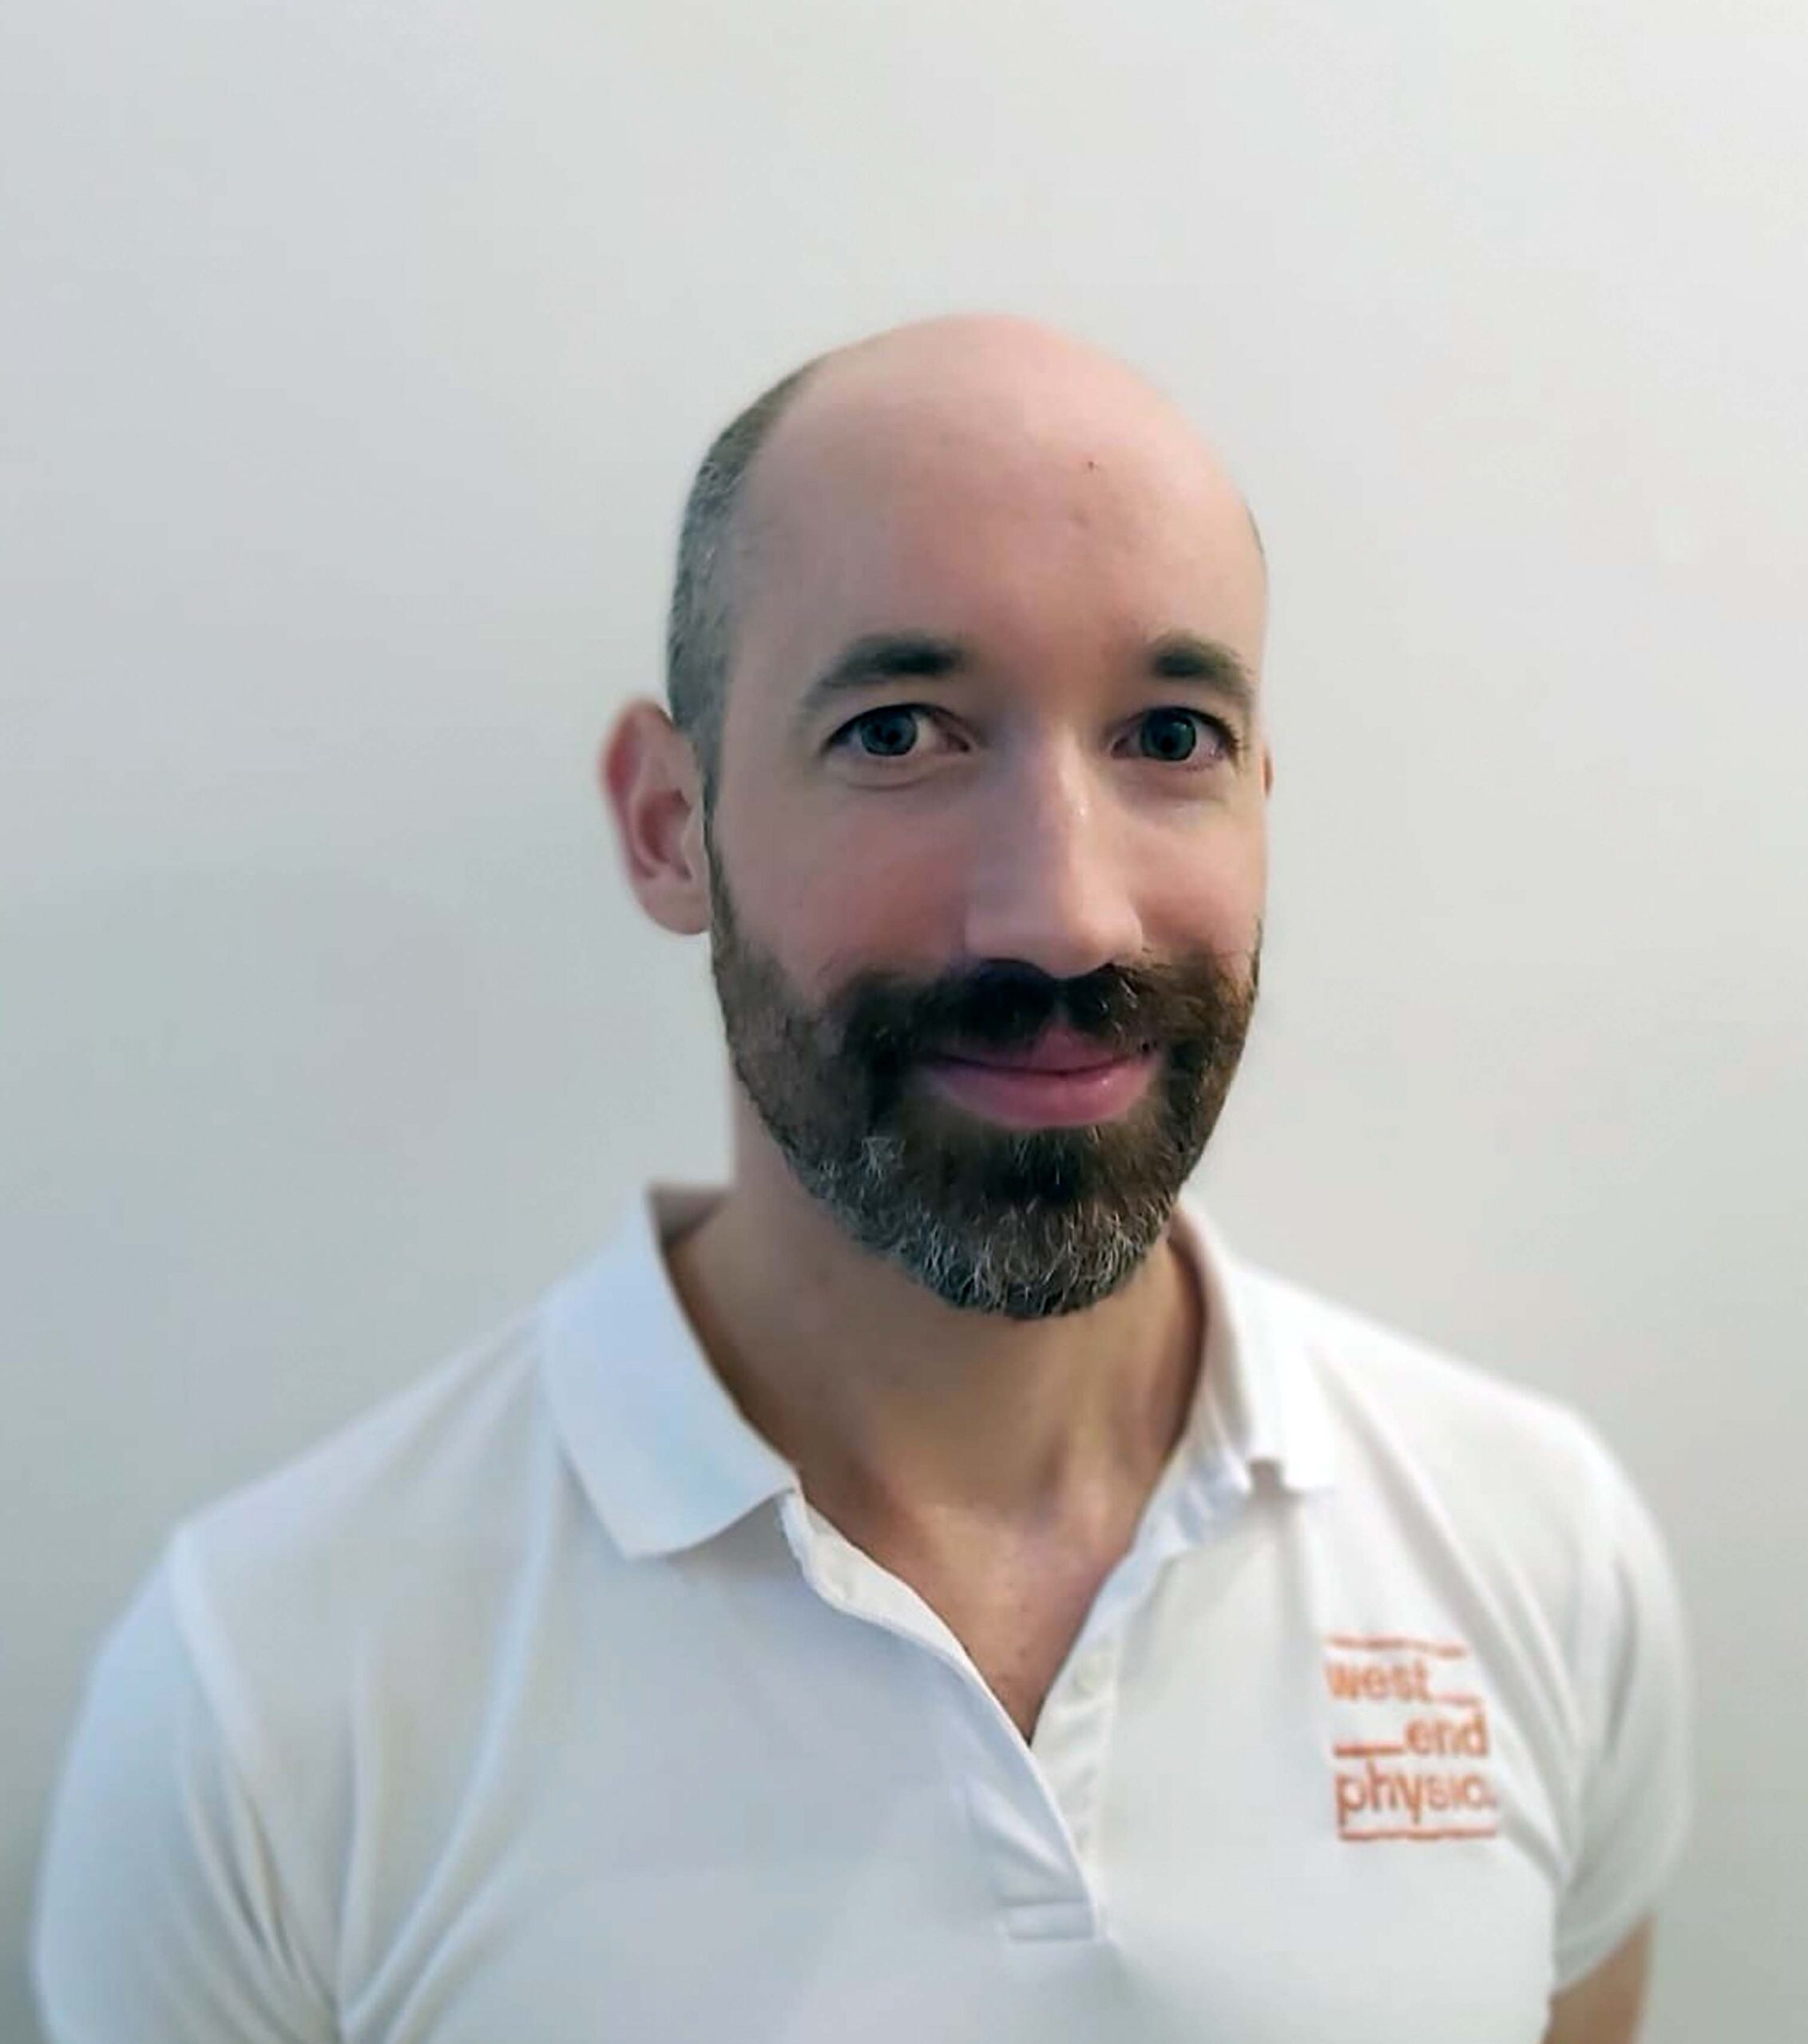 ANDREW WEST END PHYSIO